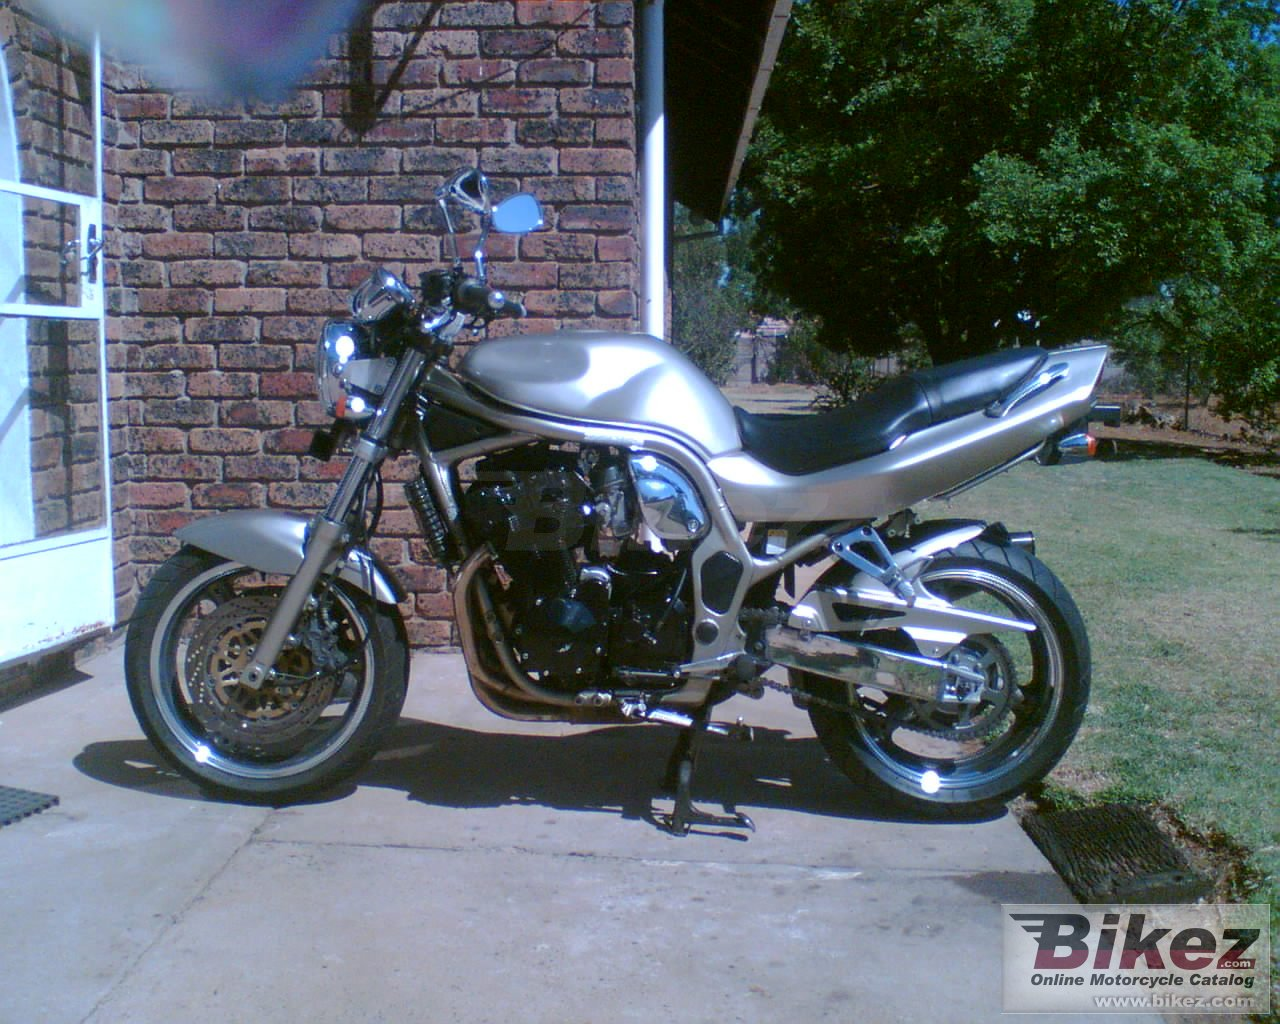 Big nymous user. gsf 1200 n bandit picture and wallpaper from Bikez.com